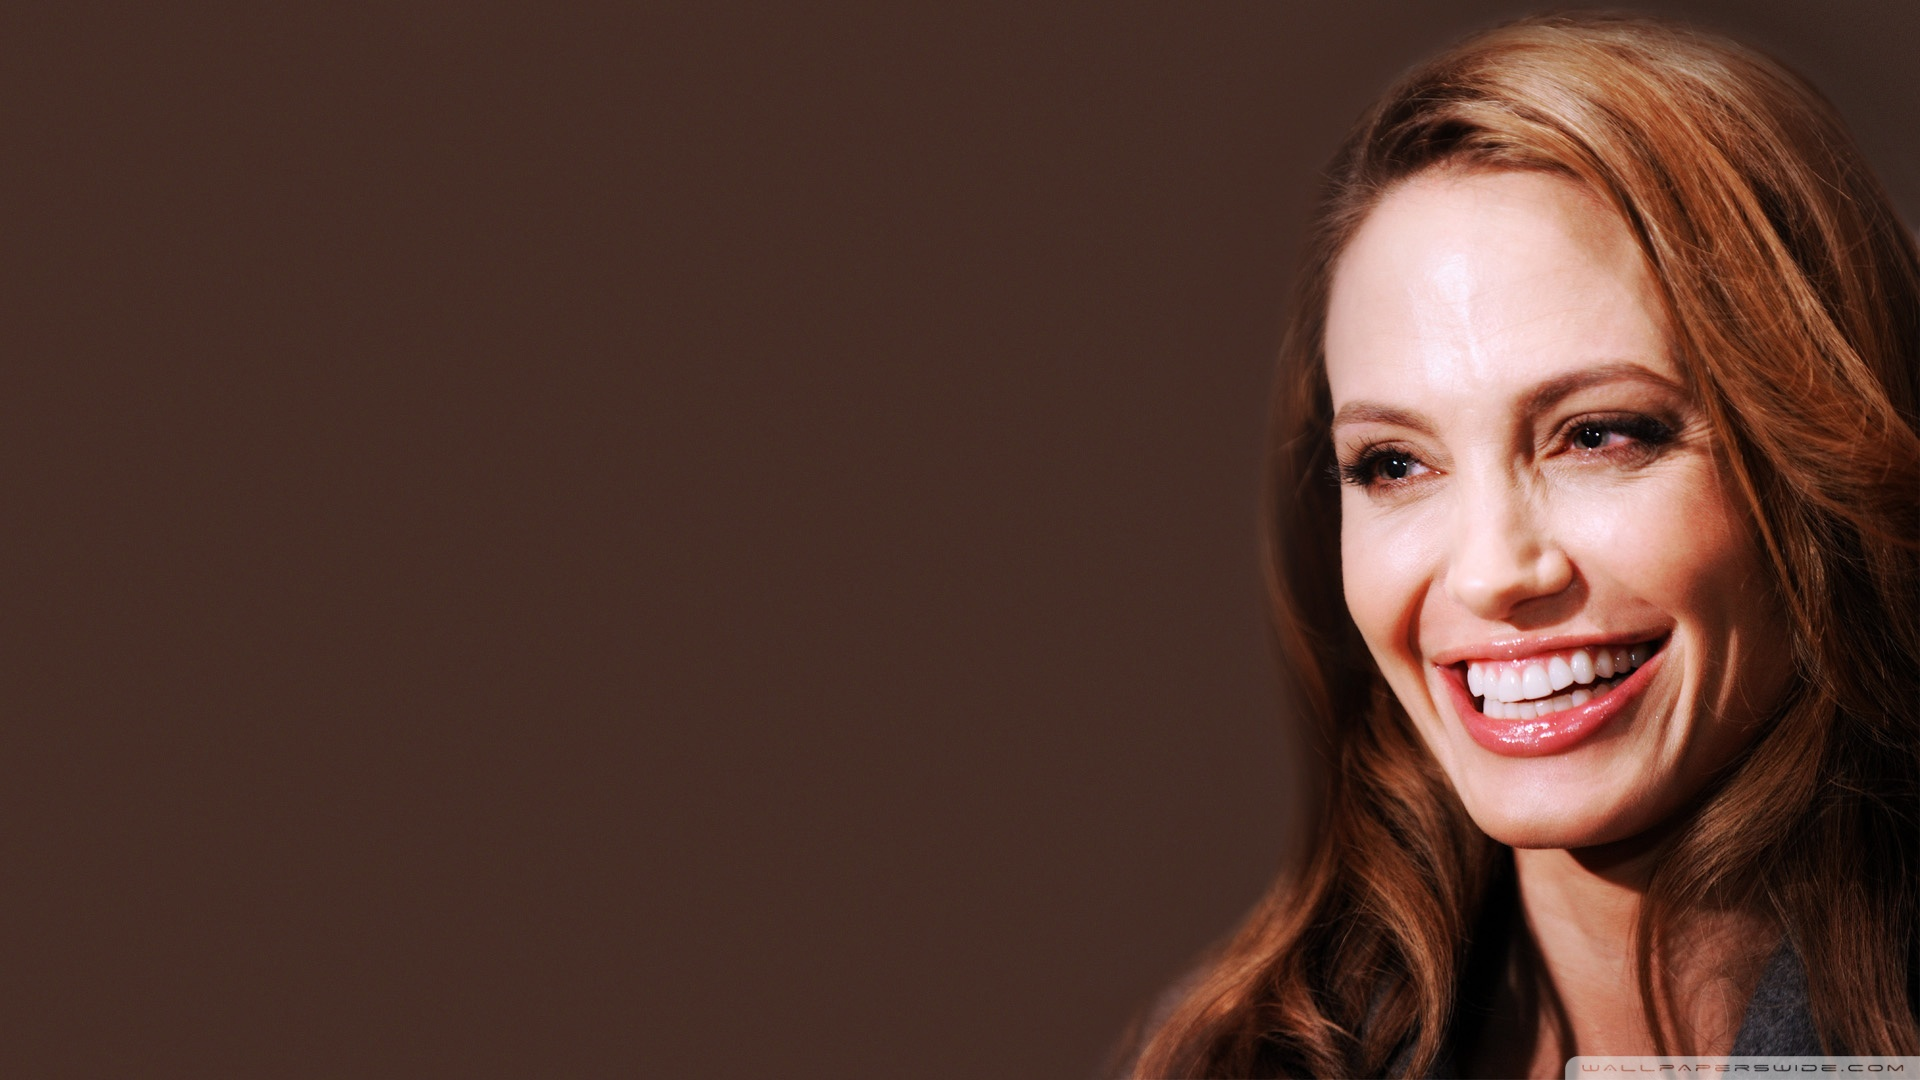 Angelina Jolie Pretty Wallpaper 1920x1080 Angelina Jolie Pretty 1920x1080